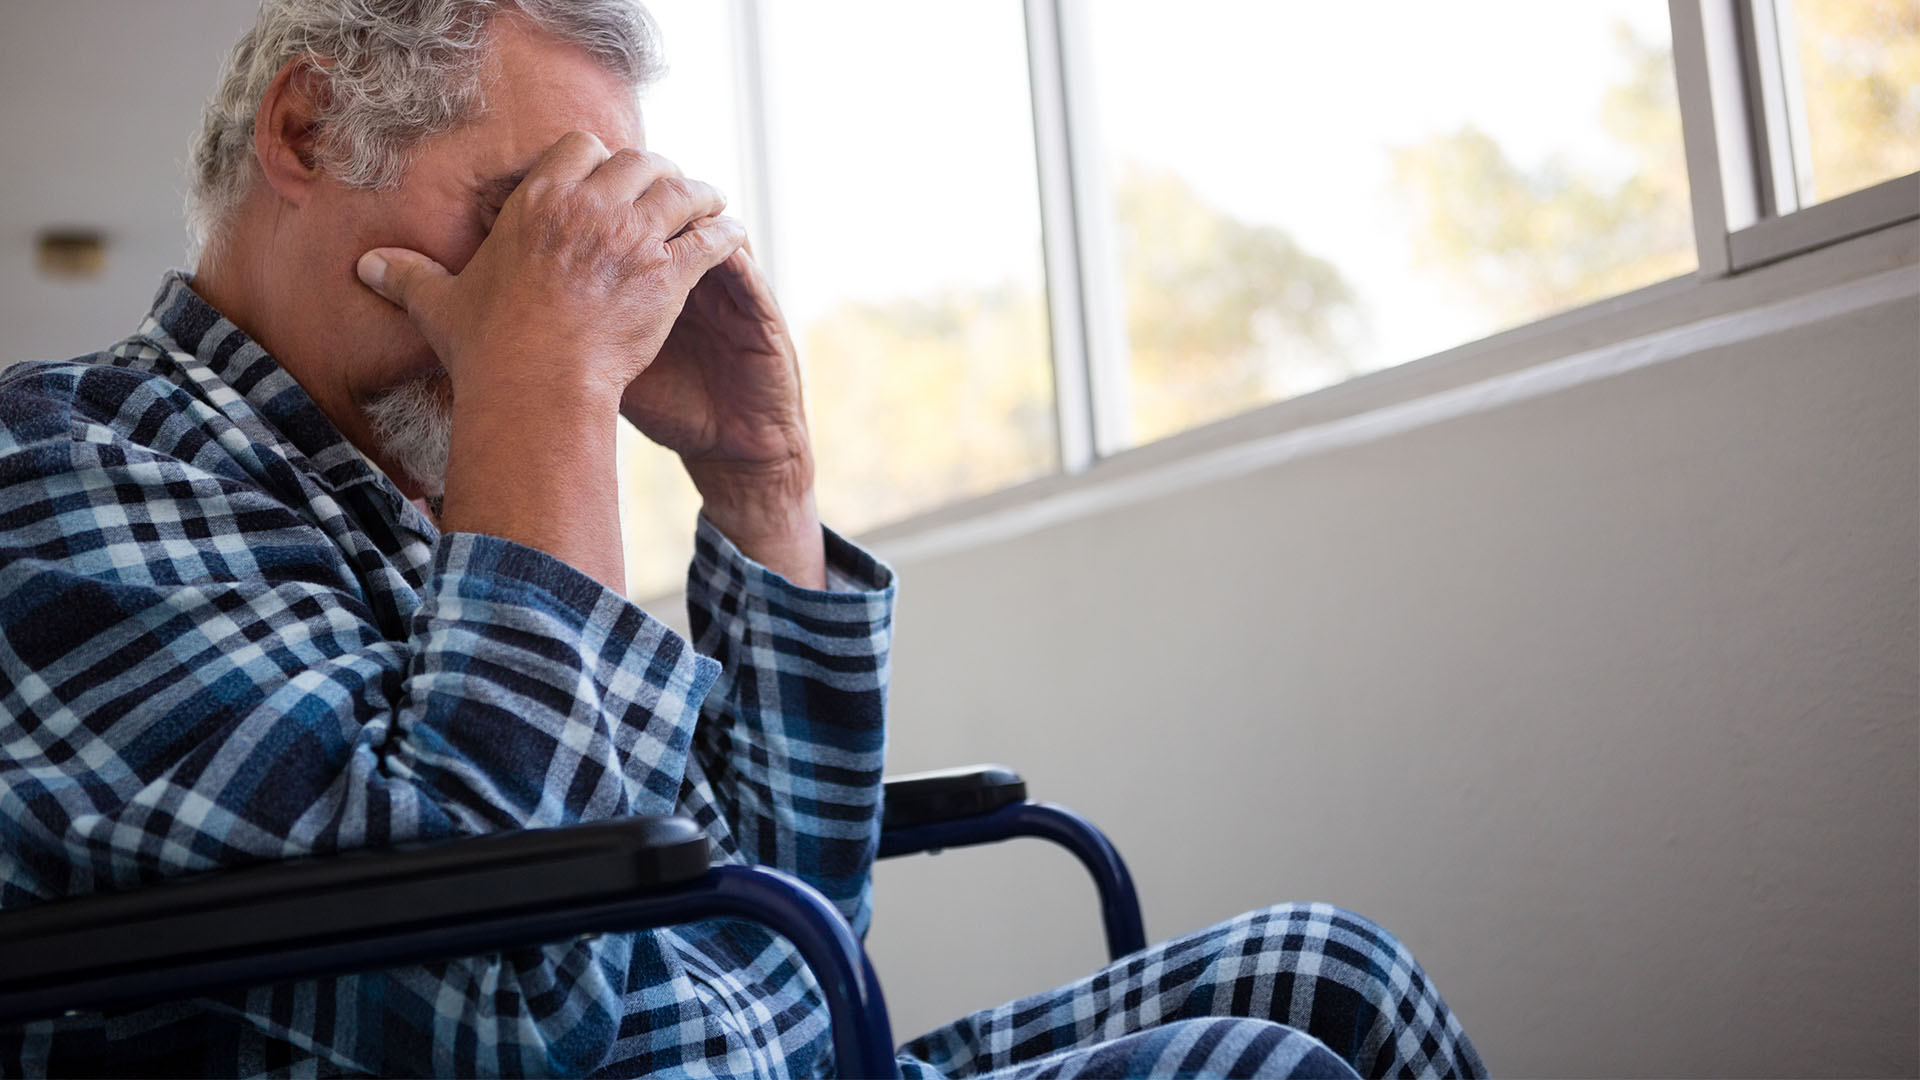 sad man in wheelchair with hands covering face